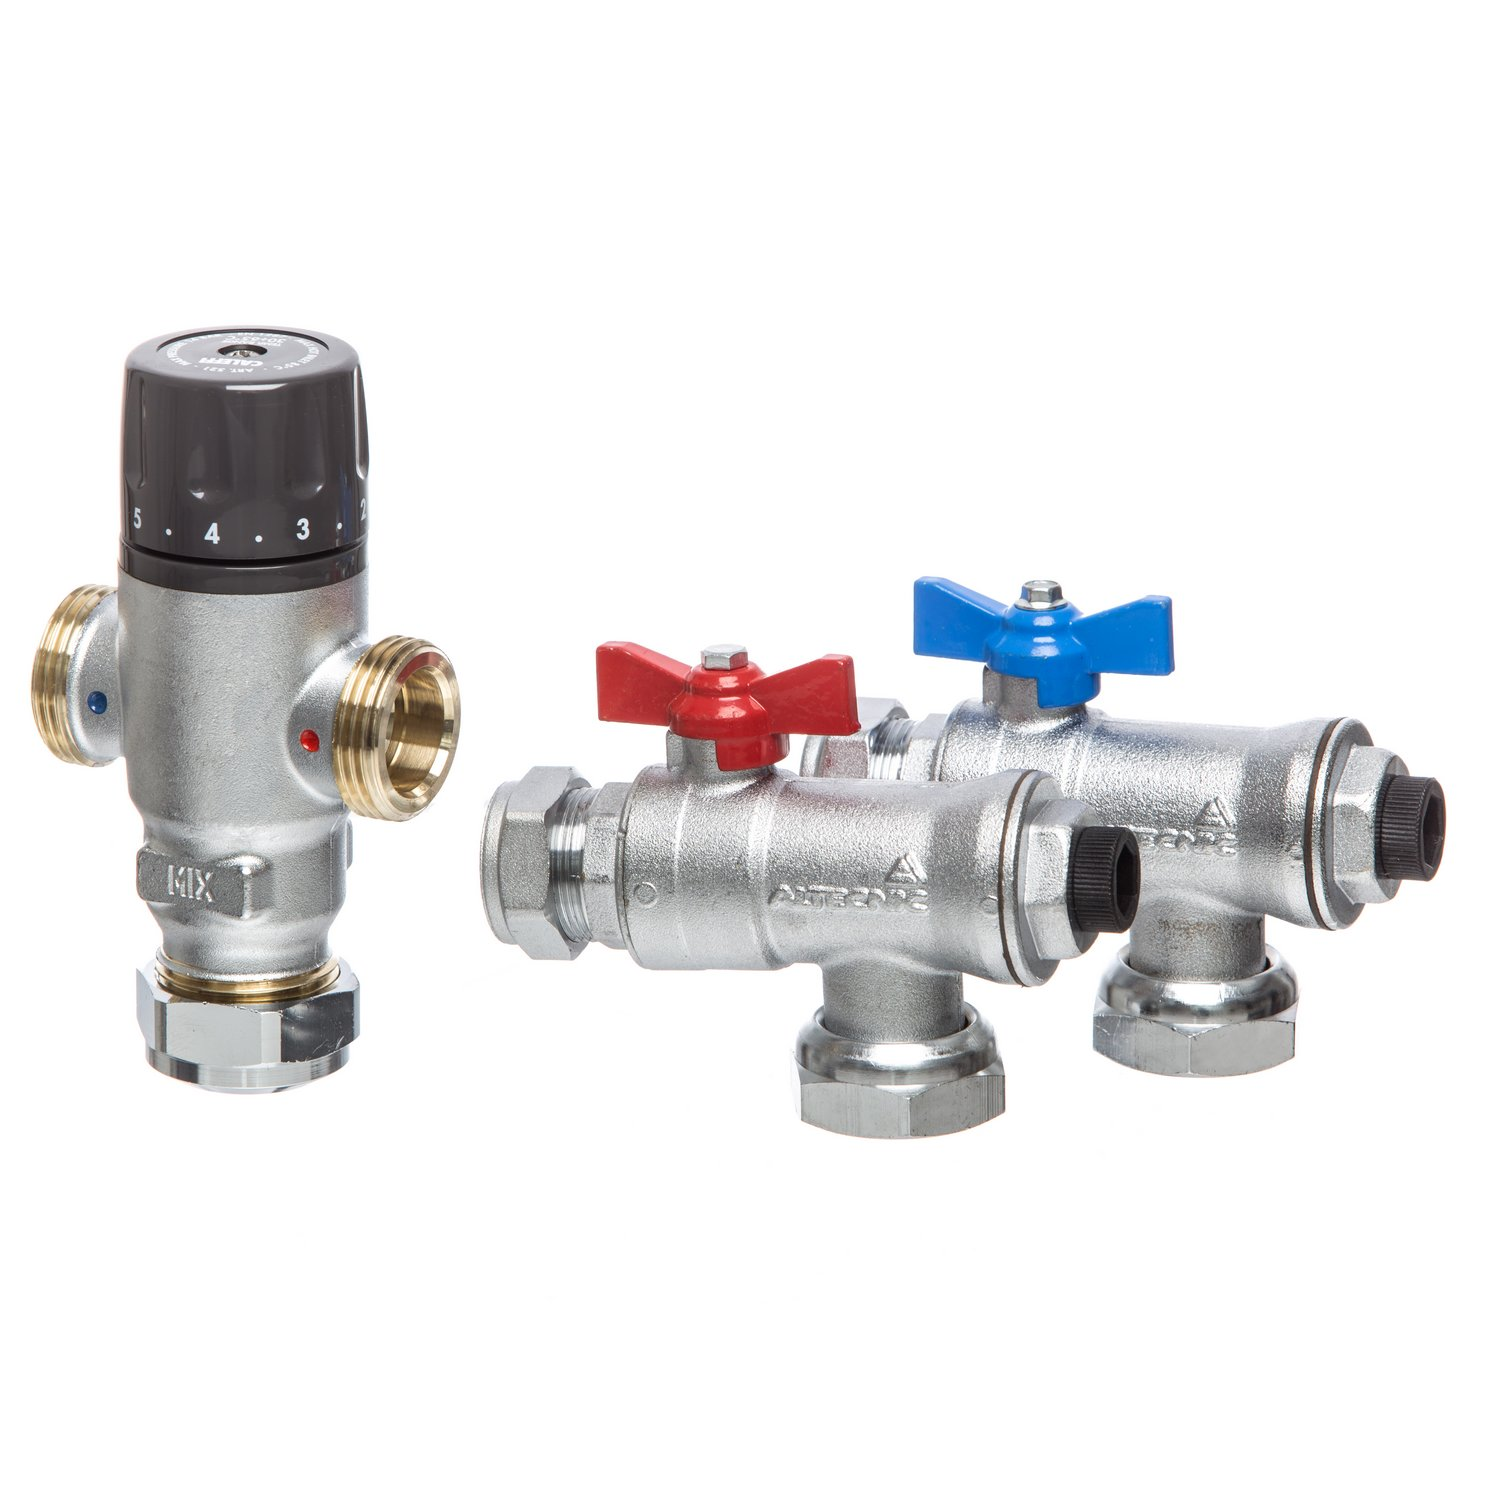 https://www.mepstock.co.uk/admin/images/MIXCAL III THERMOSTATIC FAILSAFE MIXING VALVE - ART 5211 (INC. CHECK VALVES).jpg